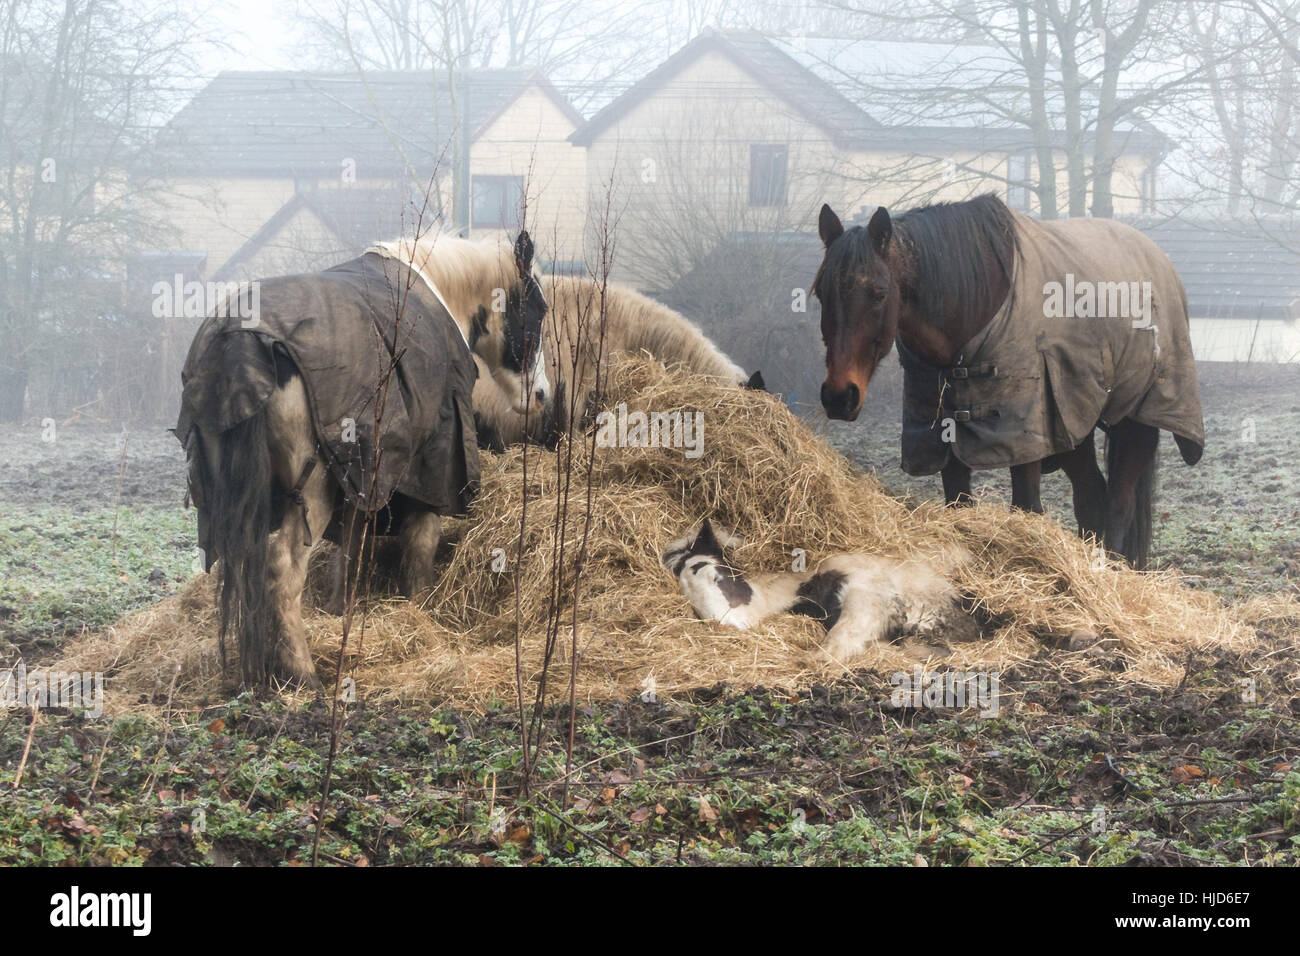 Burley-in-Wharfedale, West Yorkshire, UK. 23rd January 201y.  Young horse tucks itself up in its food supply to - Stock Image